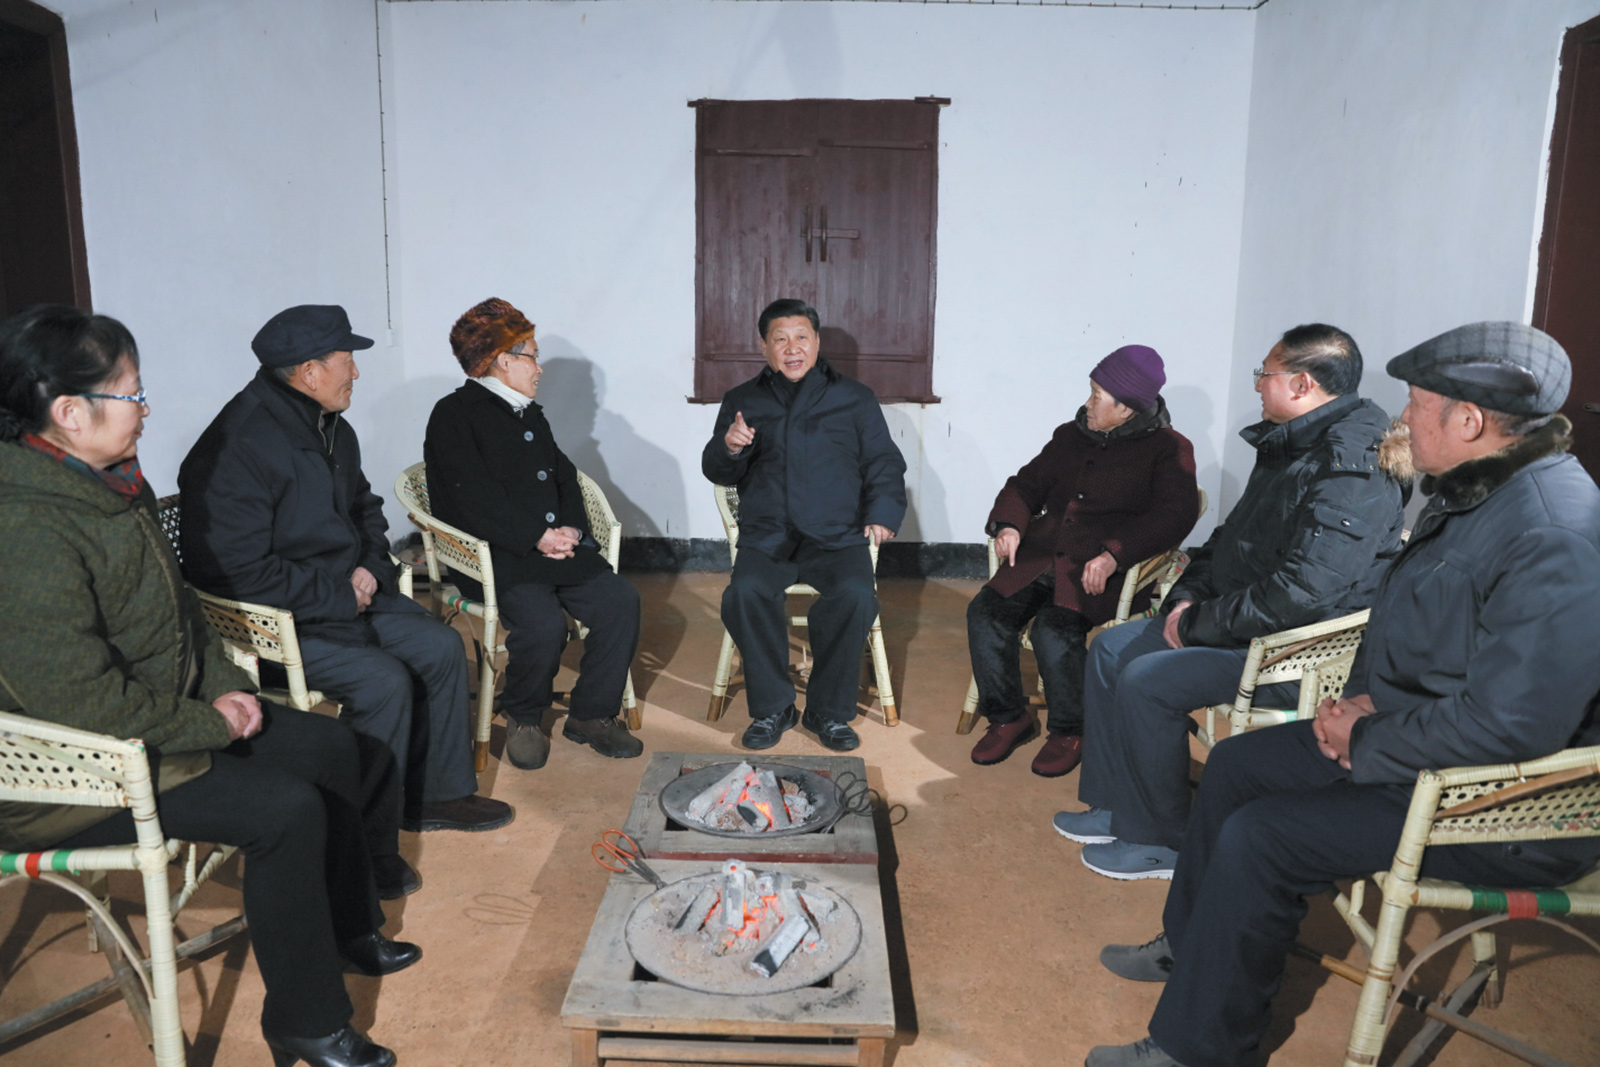 Xi Jinping, center, meeting with representatives and descendants of revolutionary martyrs in Nanchang, Jiangxi province, during a trip over the Lunar New Year that also included a pilgrimage to Jinggangshan, Mao's first revolutionary base, February 2016